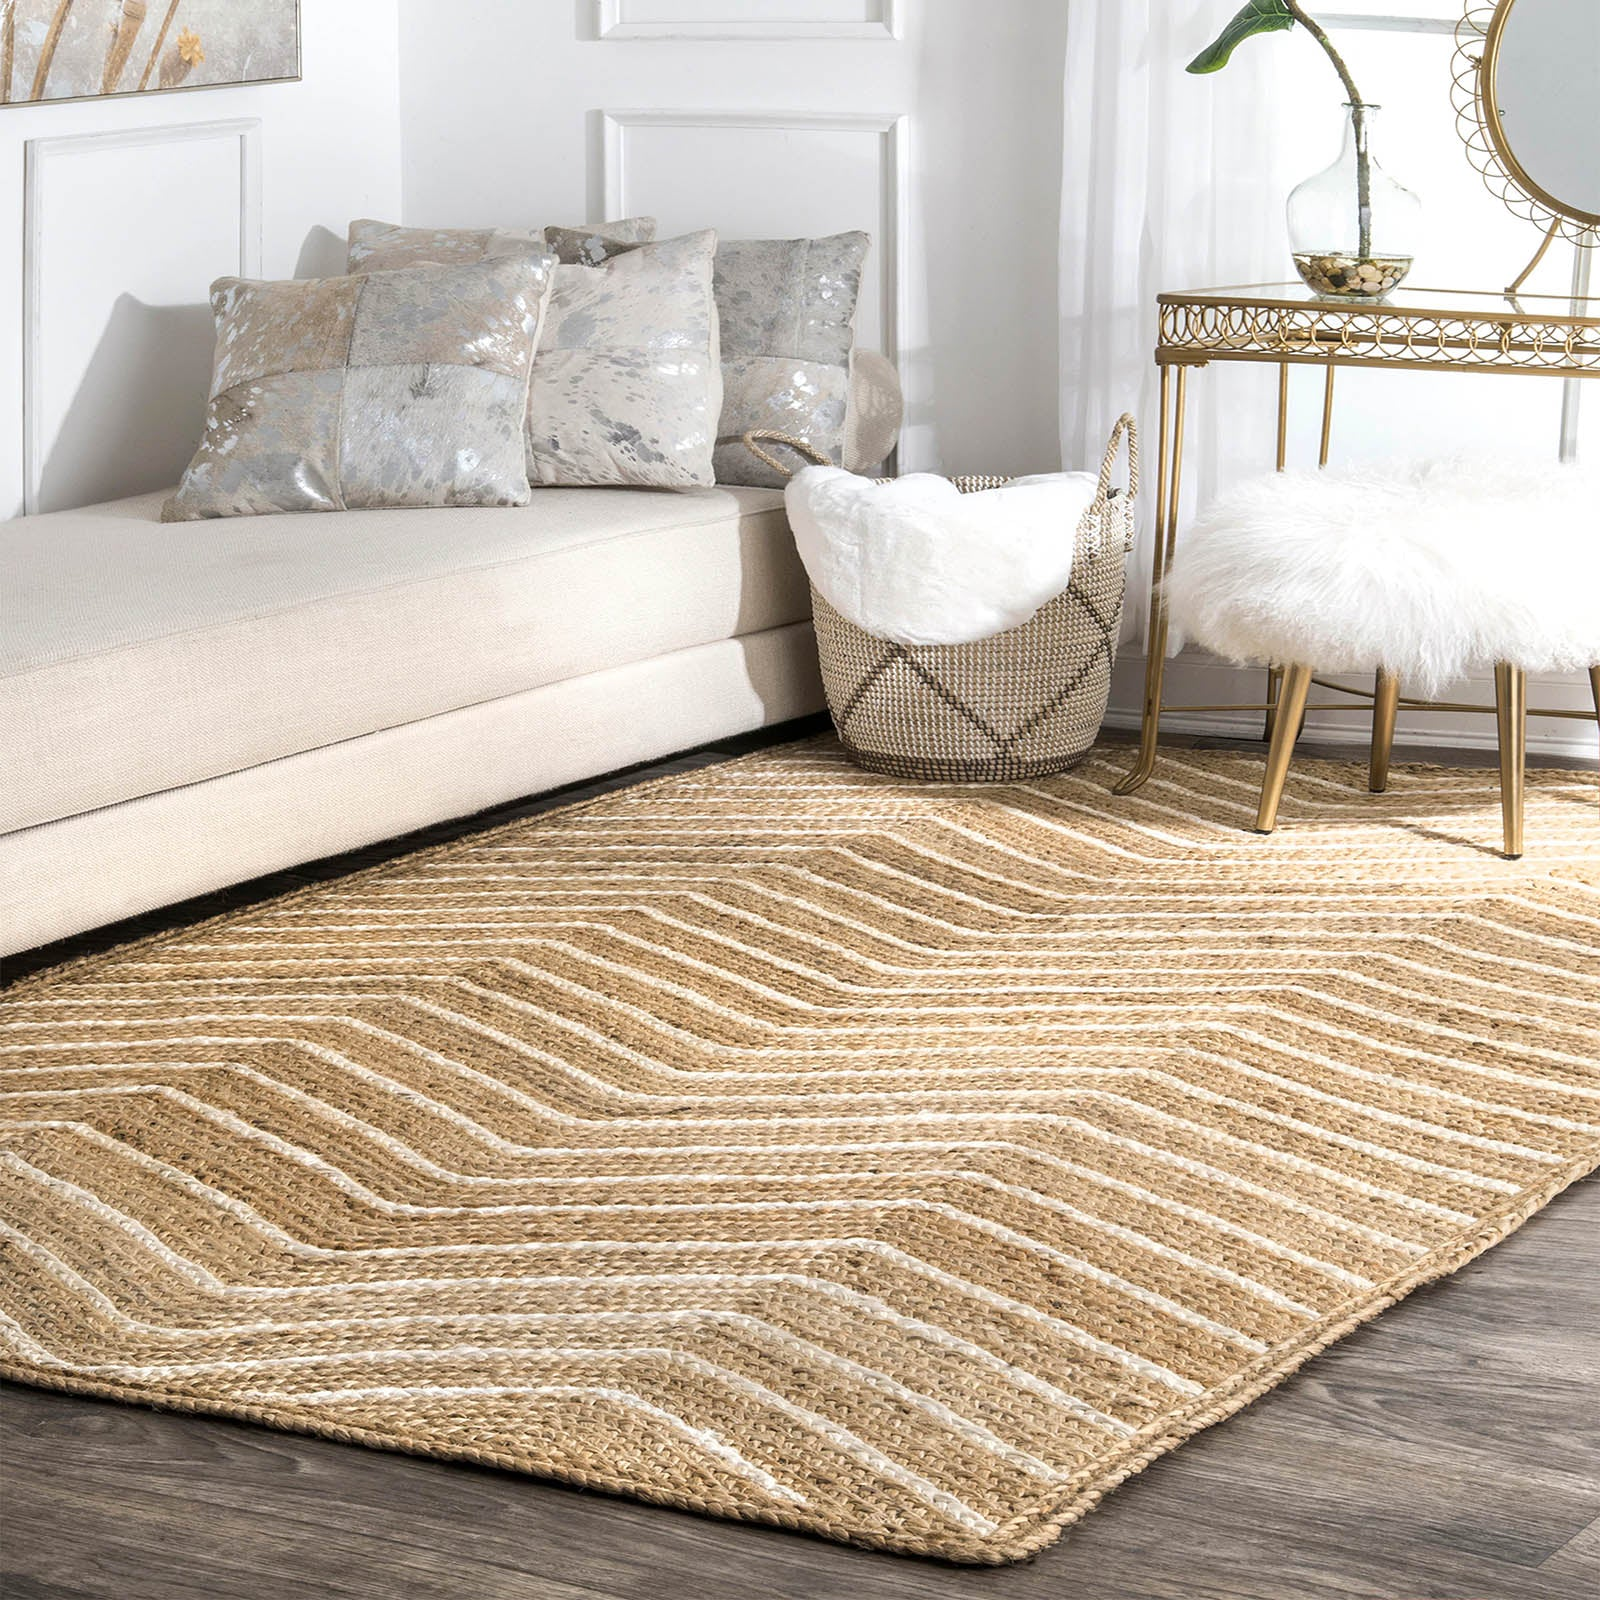 90X300 cm Braided handmade Jute Rug JH-2341-long